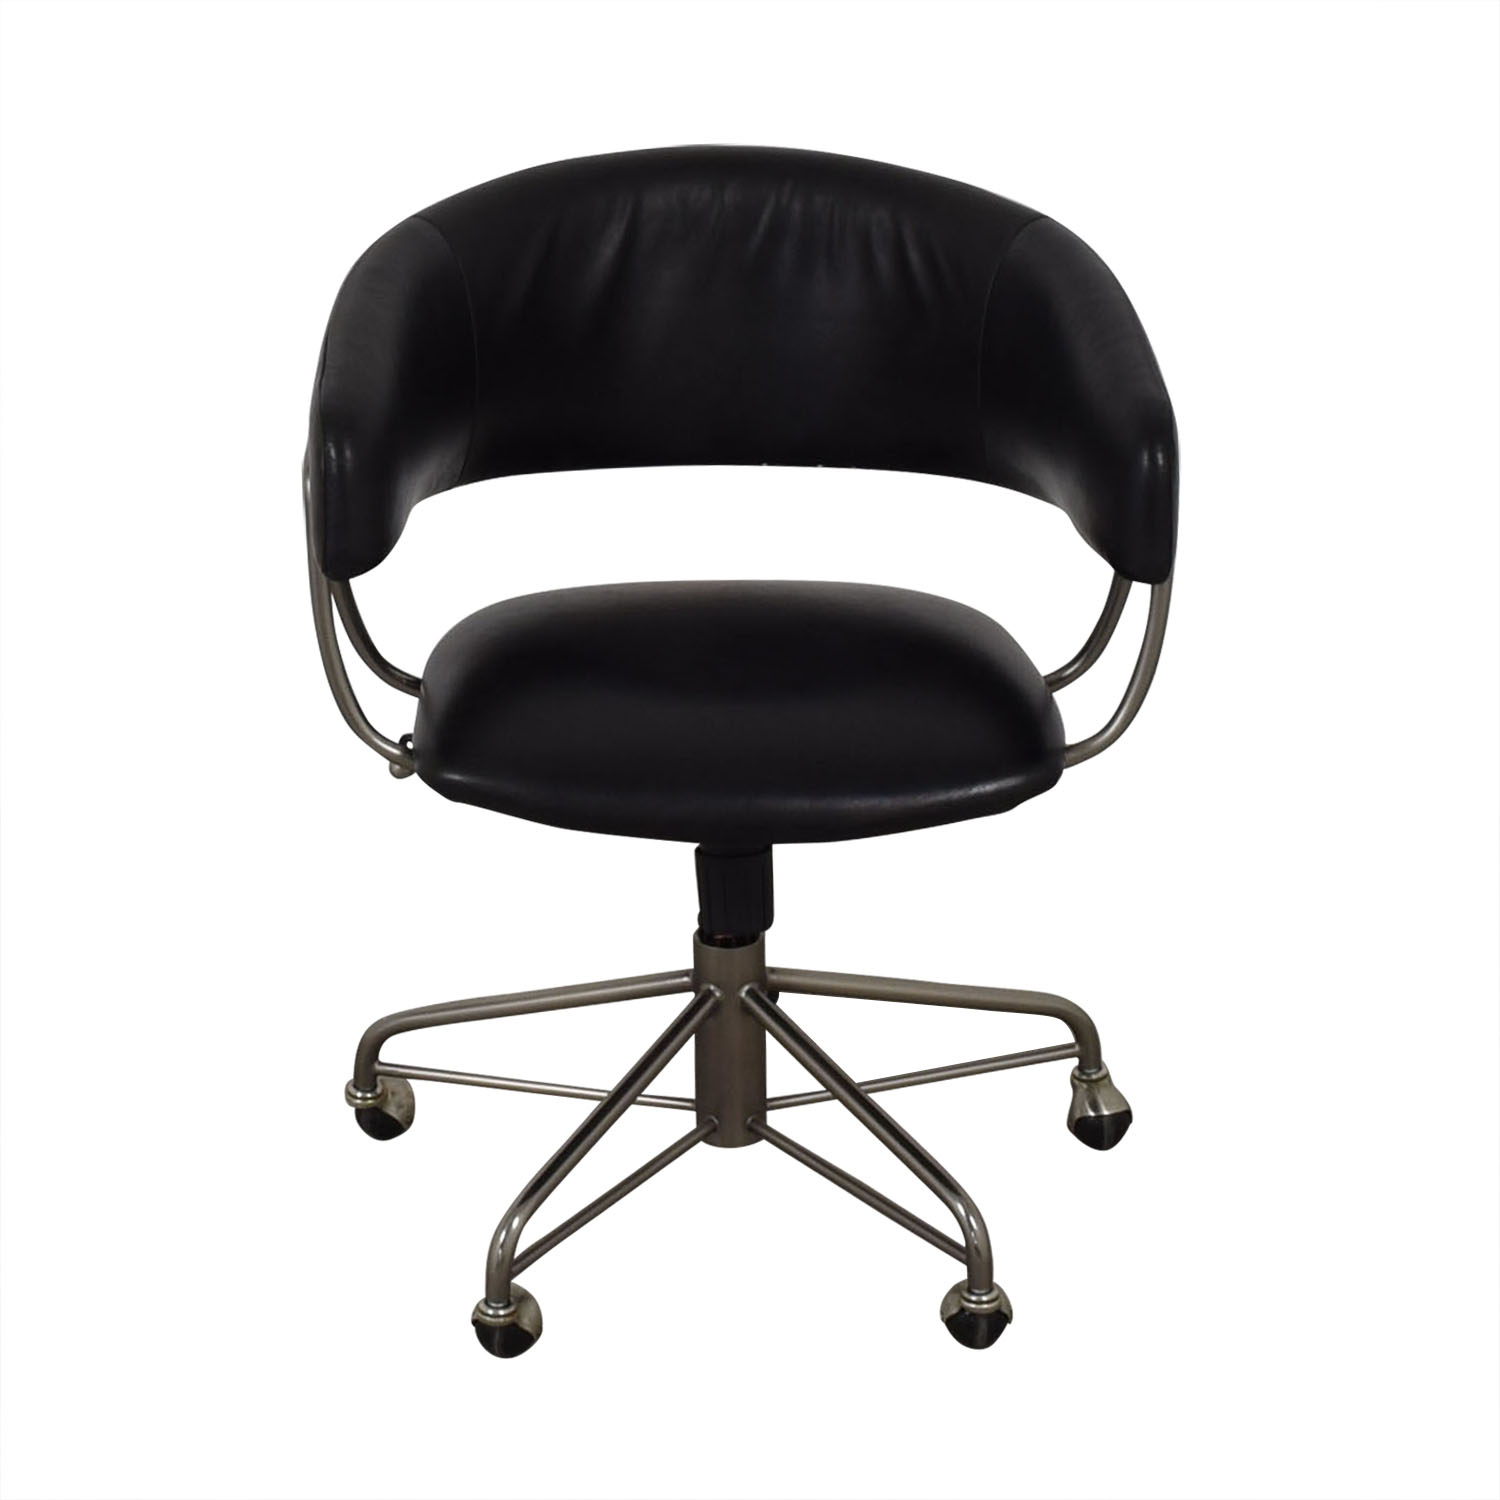 office chair castors light brown leather with ottoman 76 off west elm halifax black on buy chairs